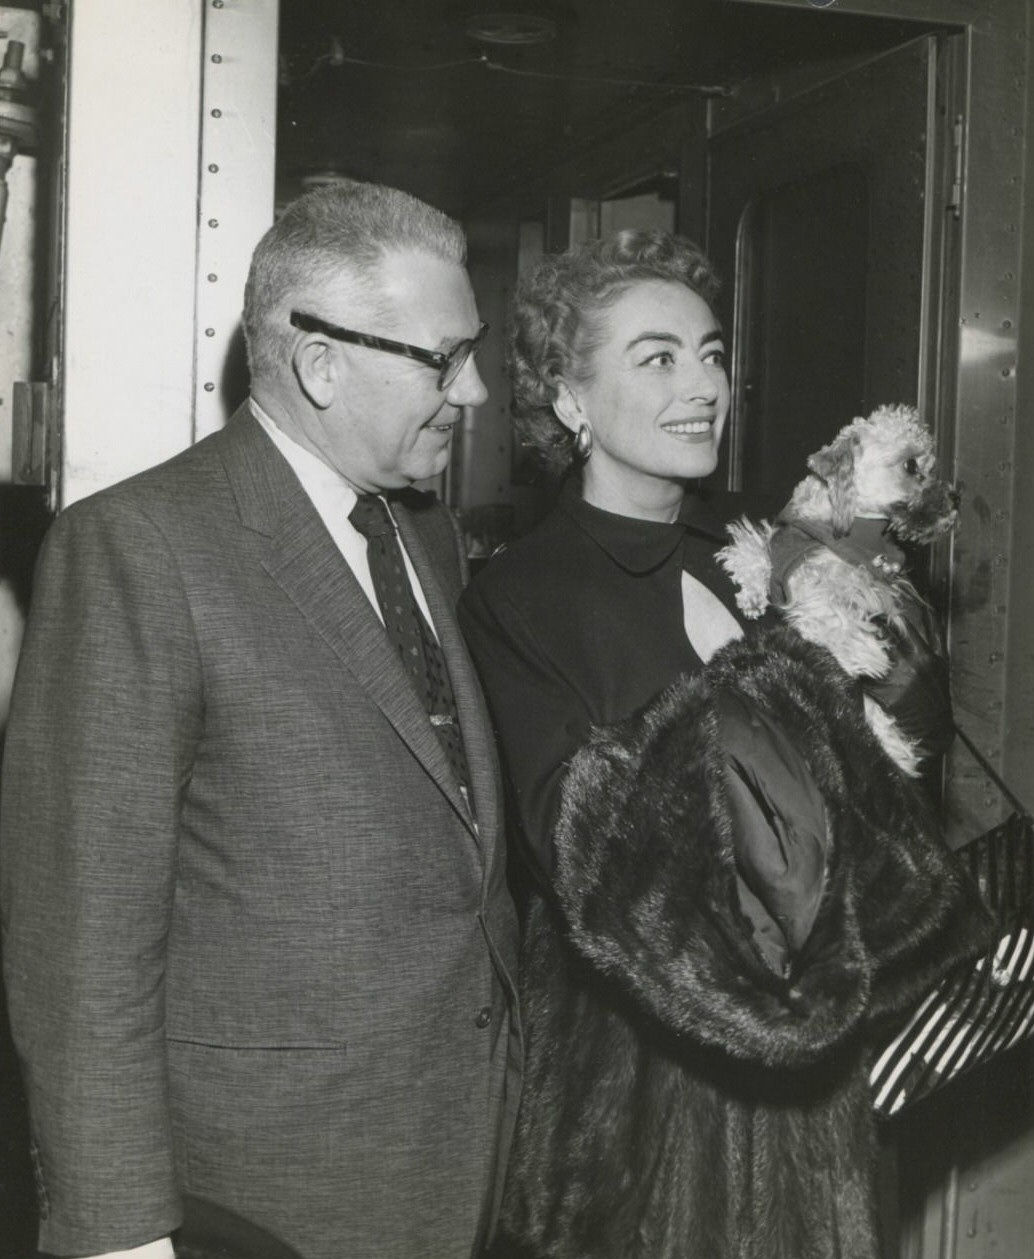 1955 with new husband Al Steele at unknown train station.